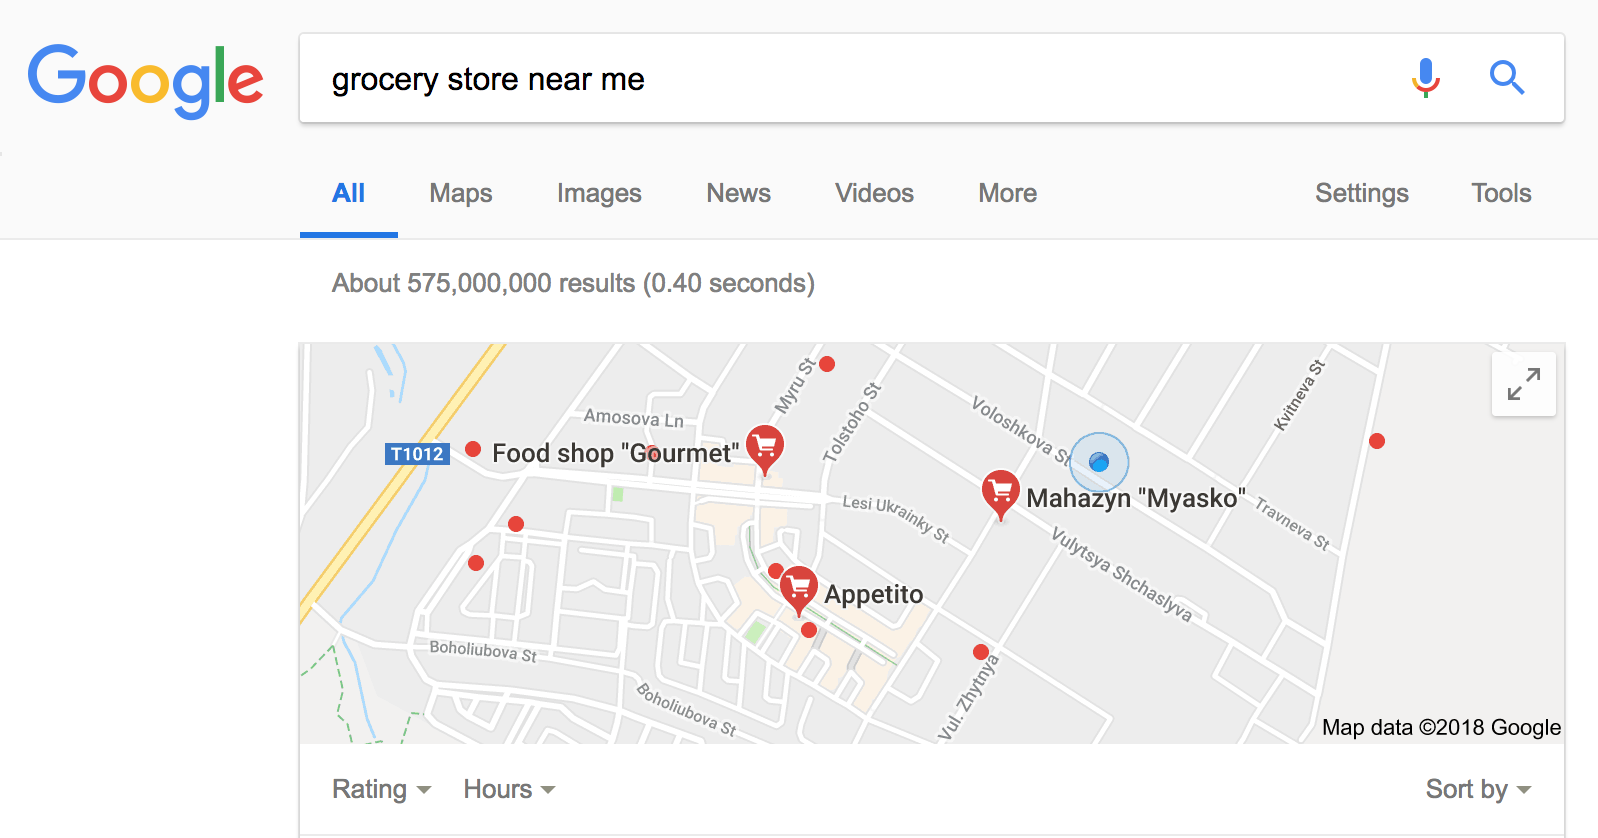 Google Maps seo example - weblium